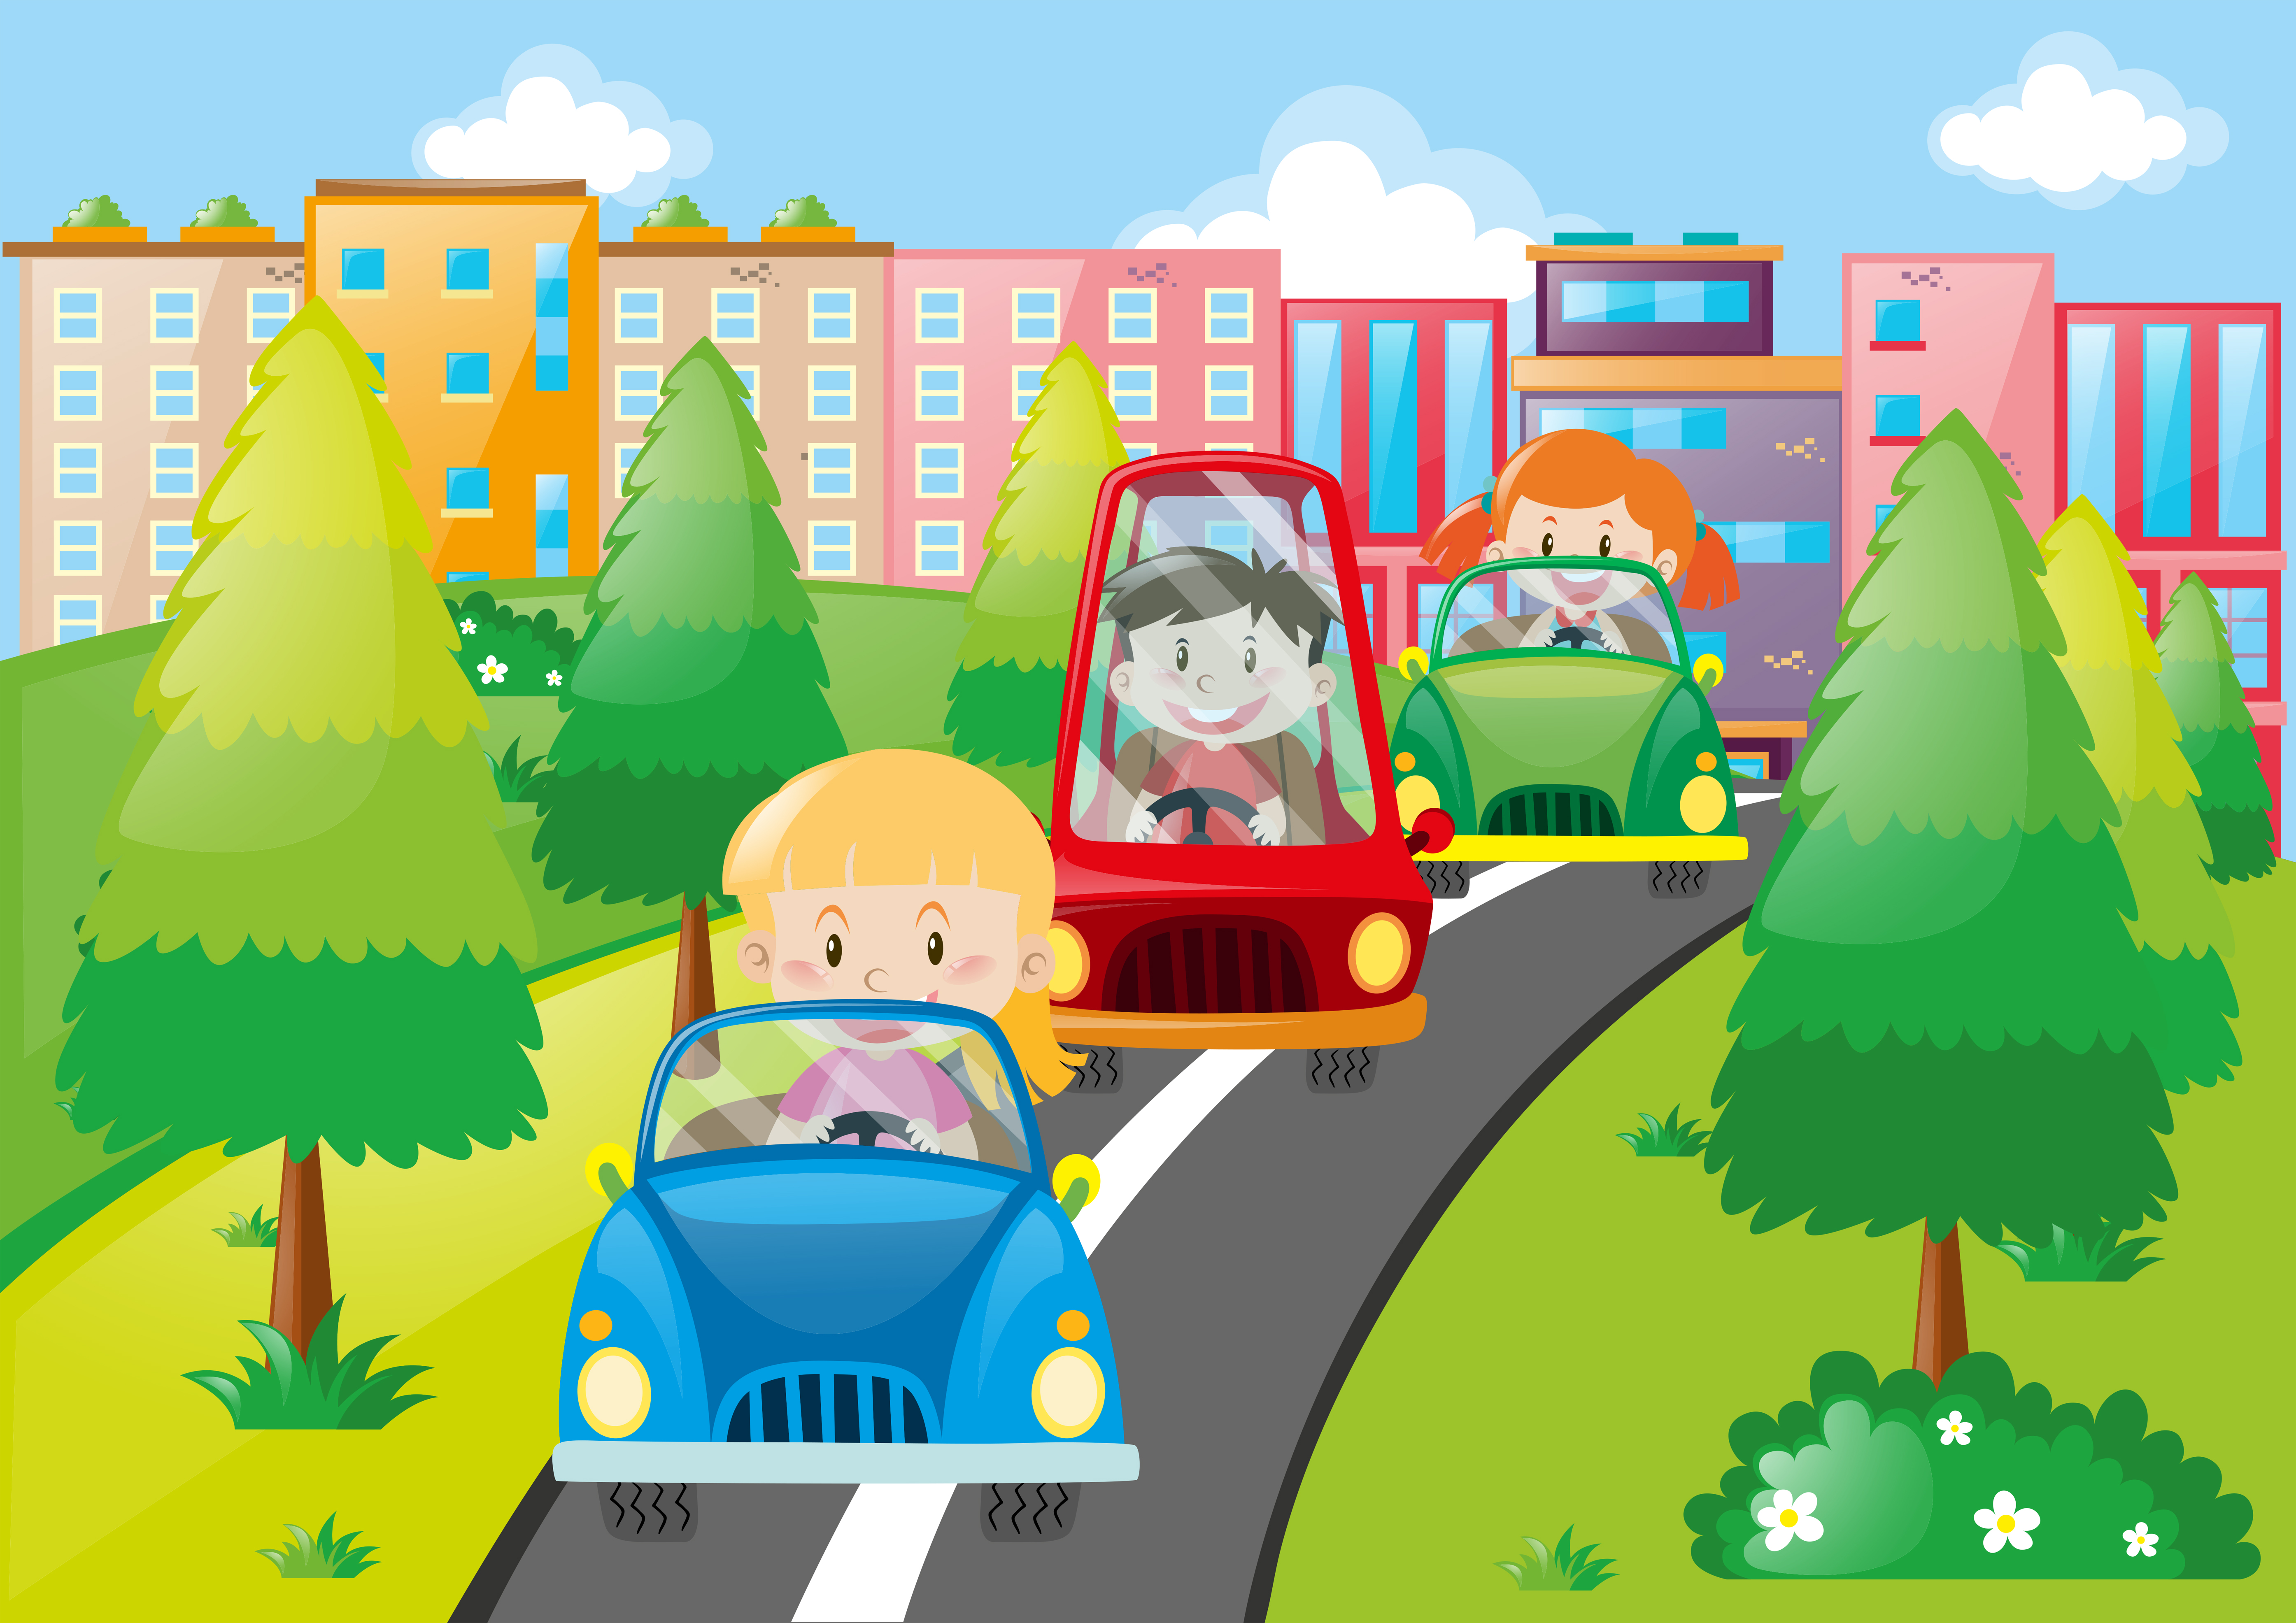 scene with kids driving cars in city